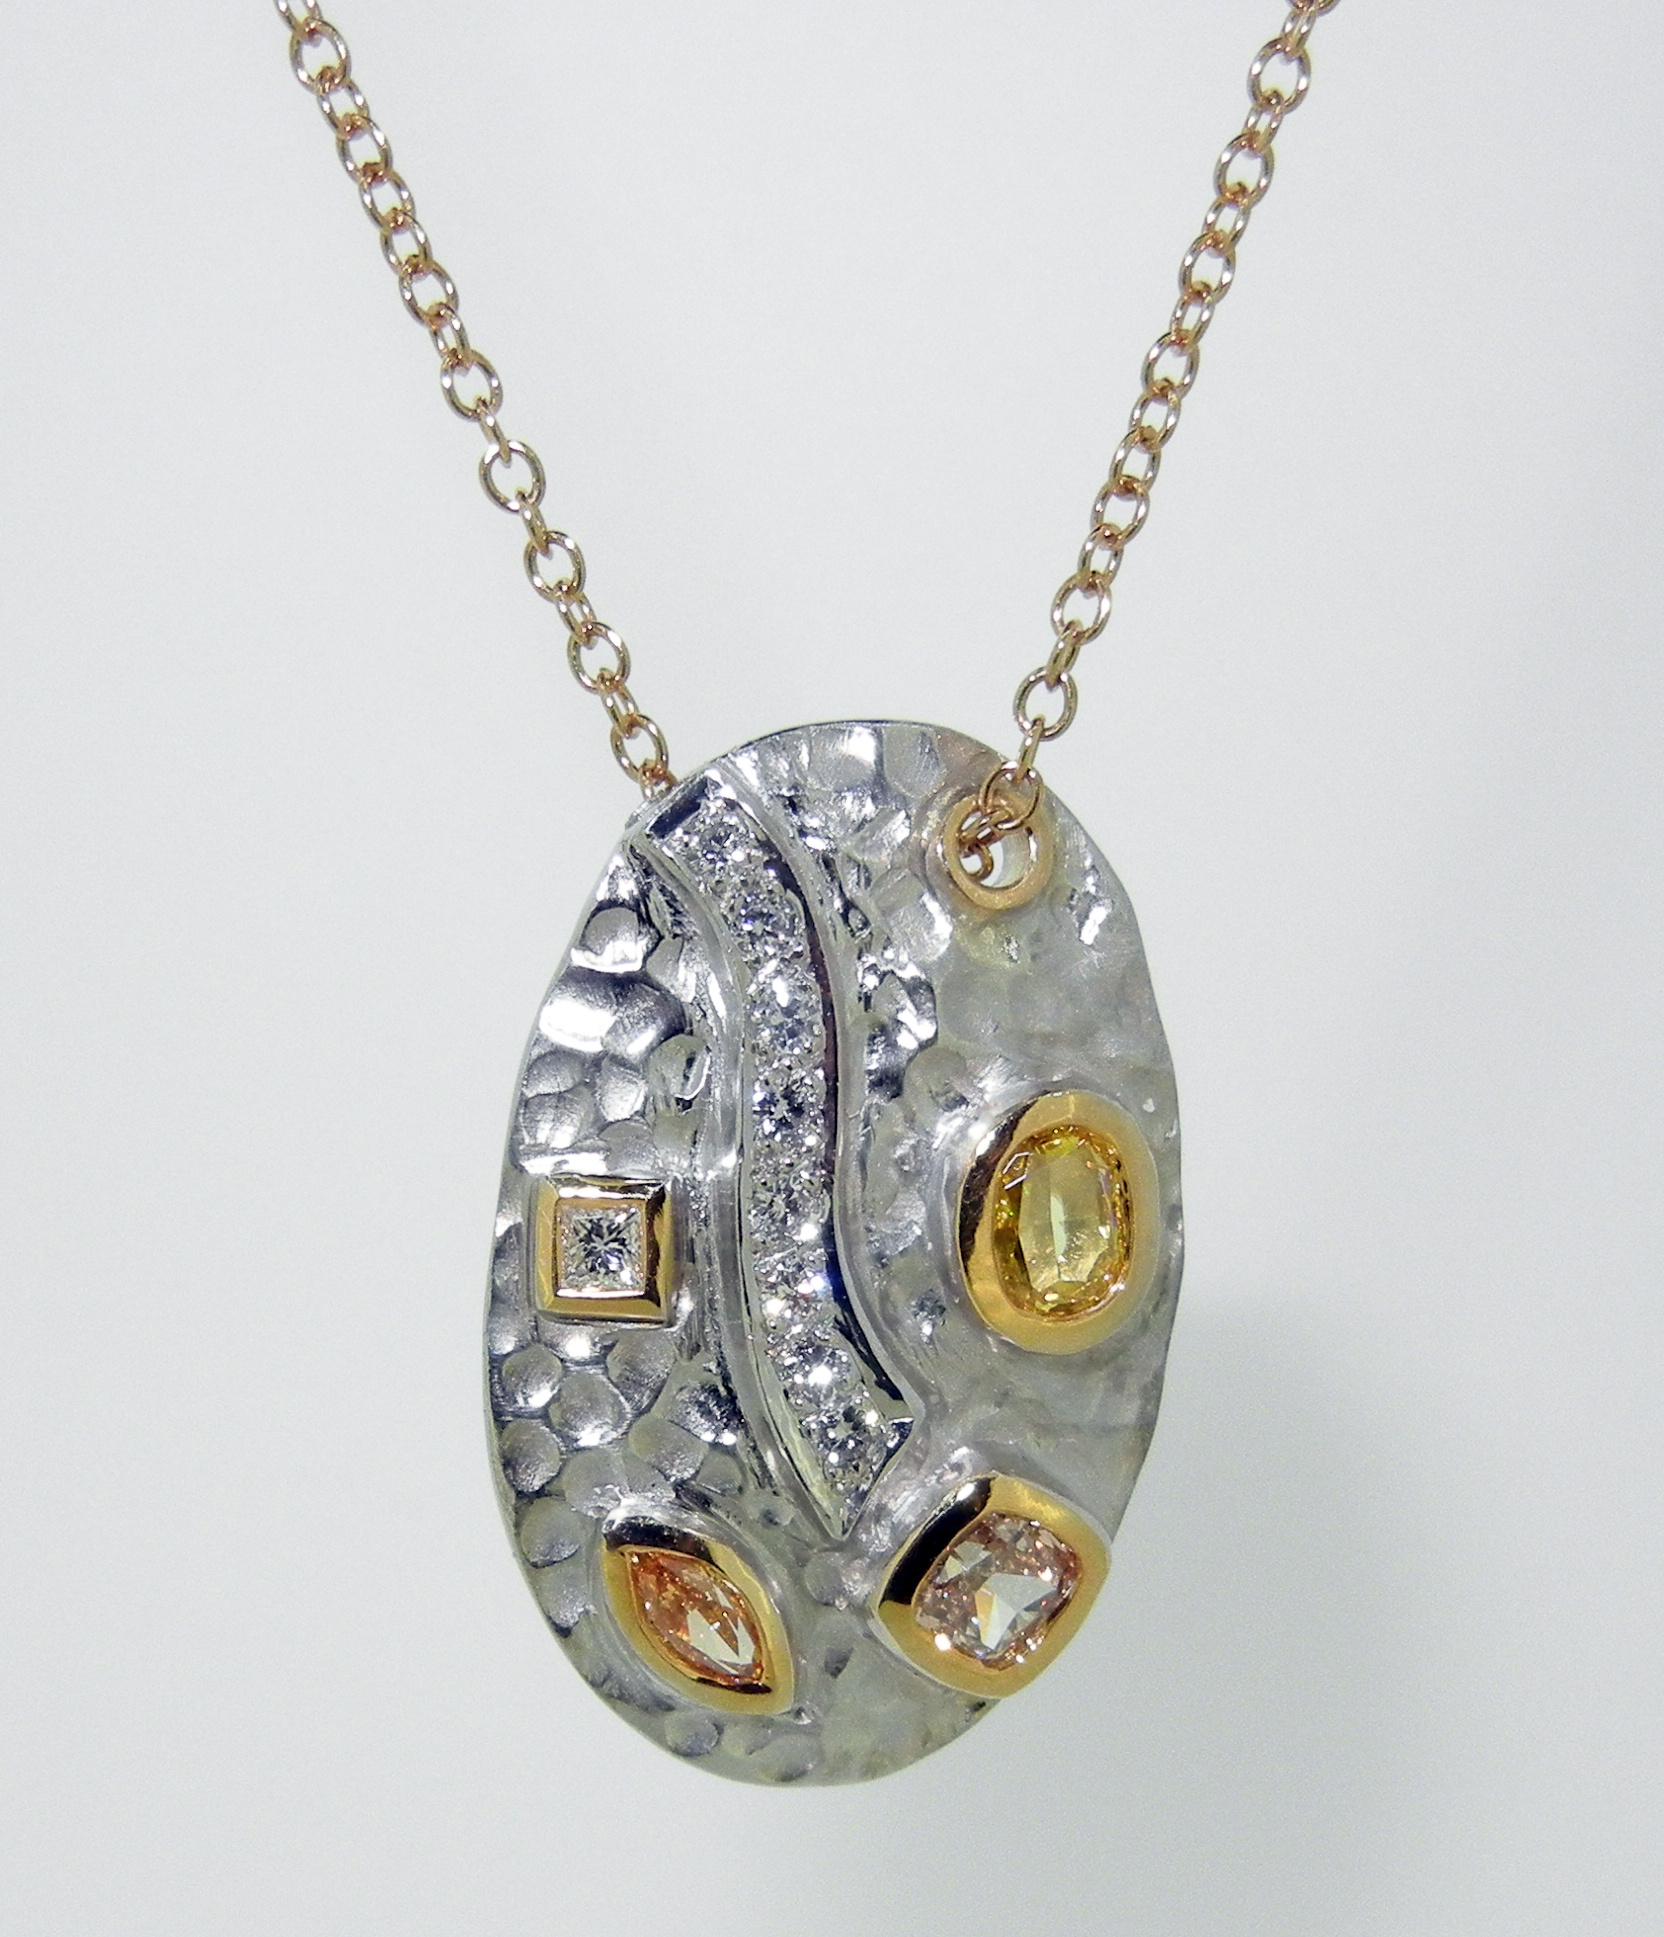 Custom Made Hammered 18k Oval set with Natural Fancy Colored and White Diamonds $5,750